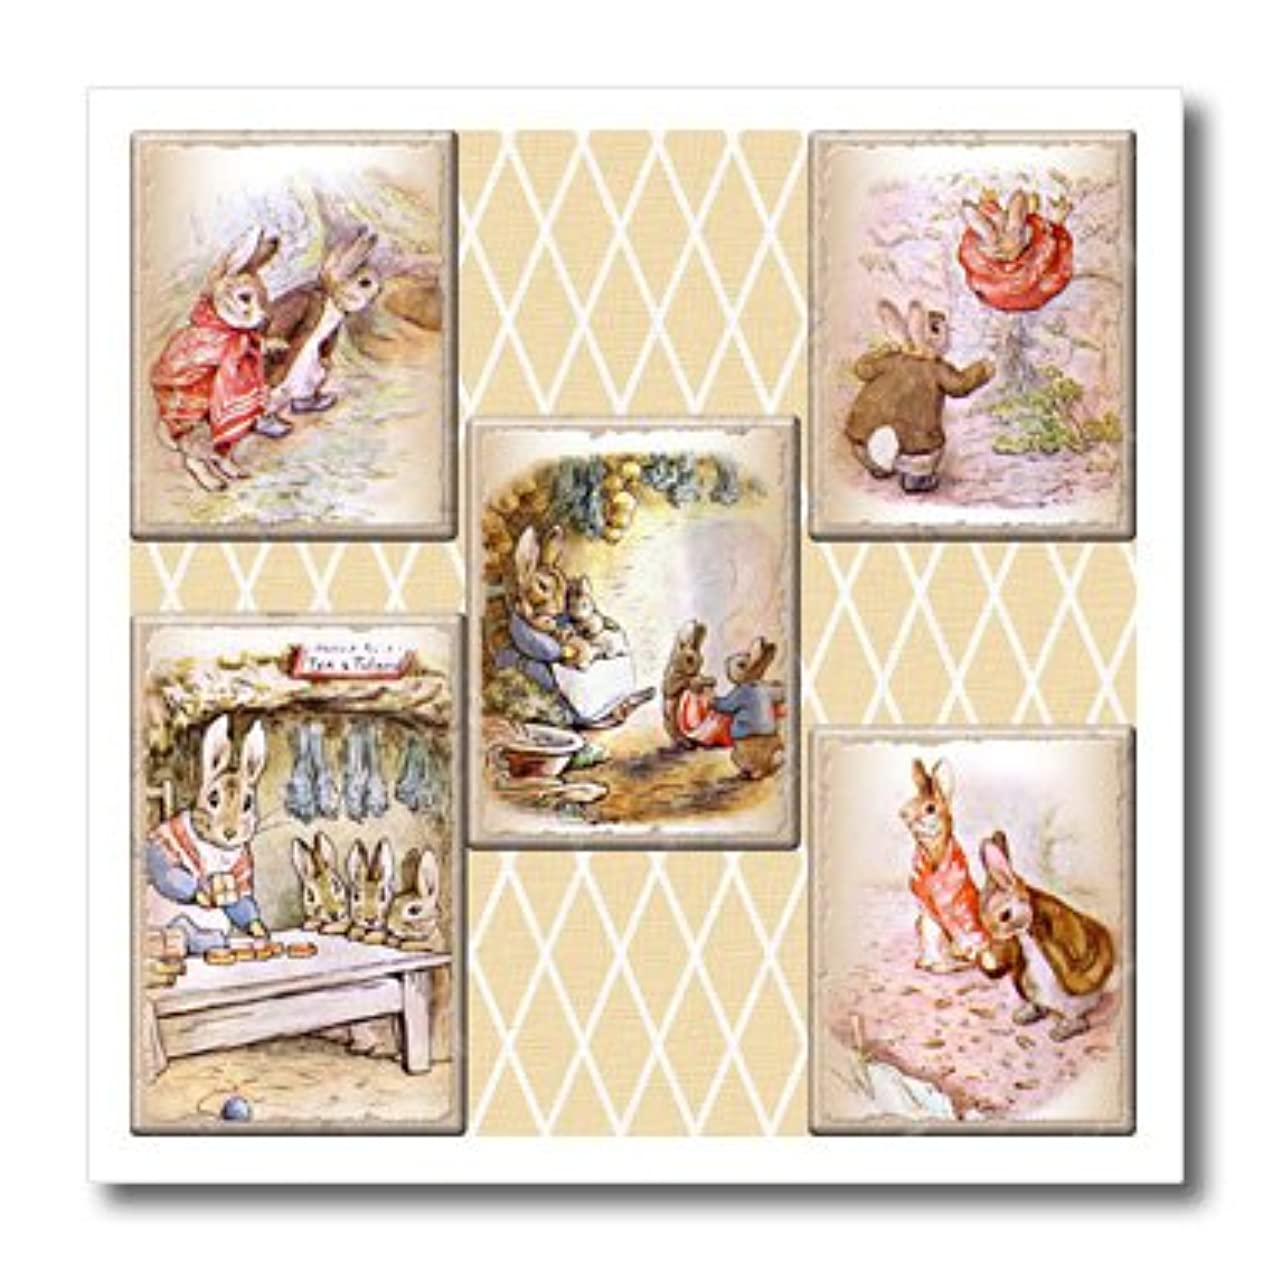 3dRose ht_79405_3 Peter Rabbit Vintage Collage Art- Stories Iron on Heat Transfer, 10 by 10